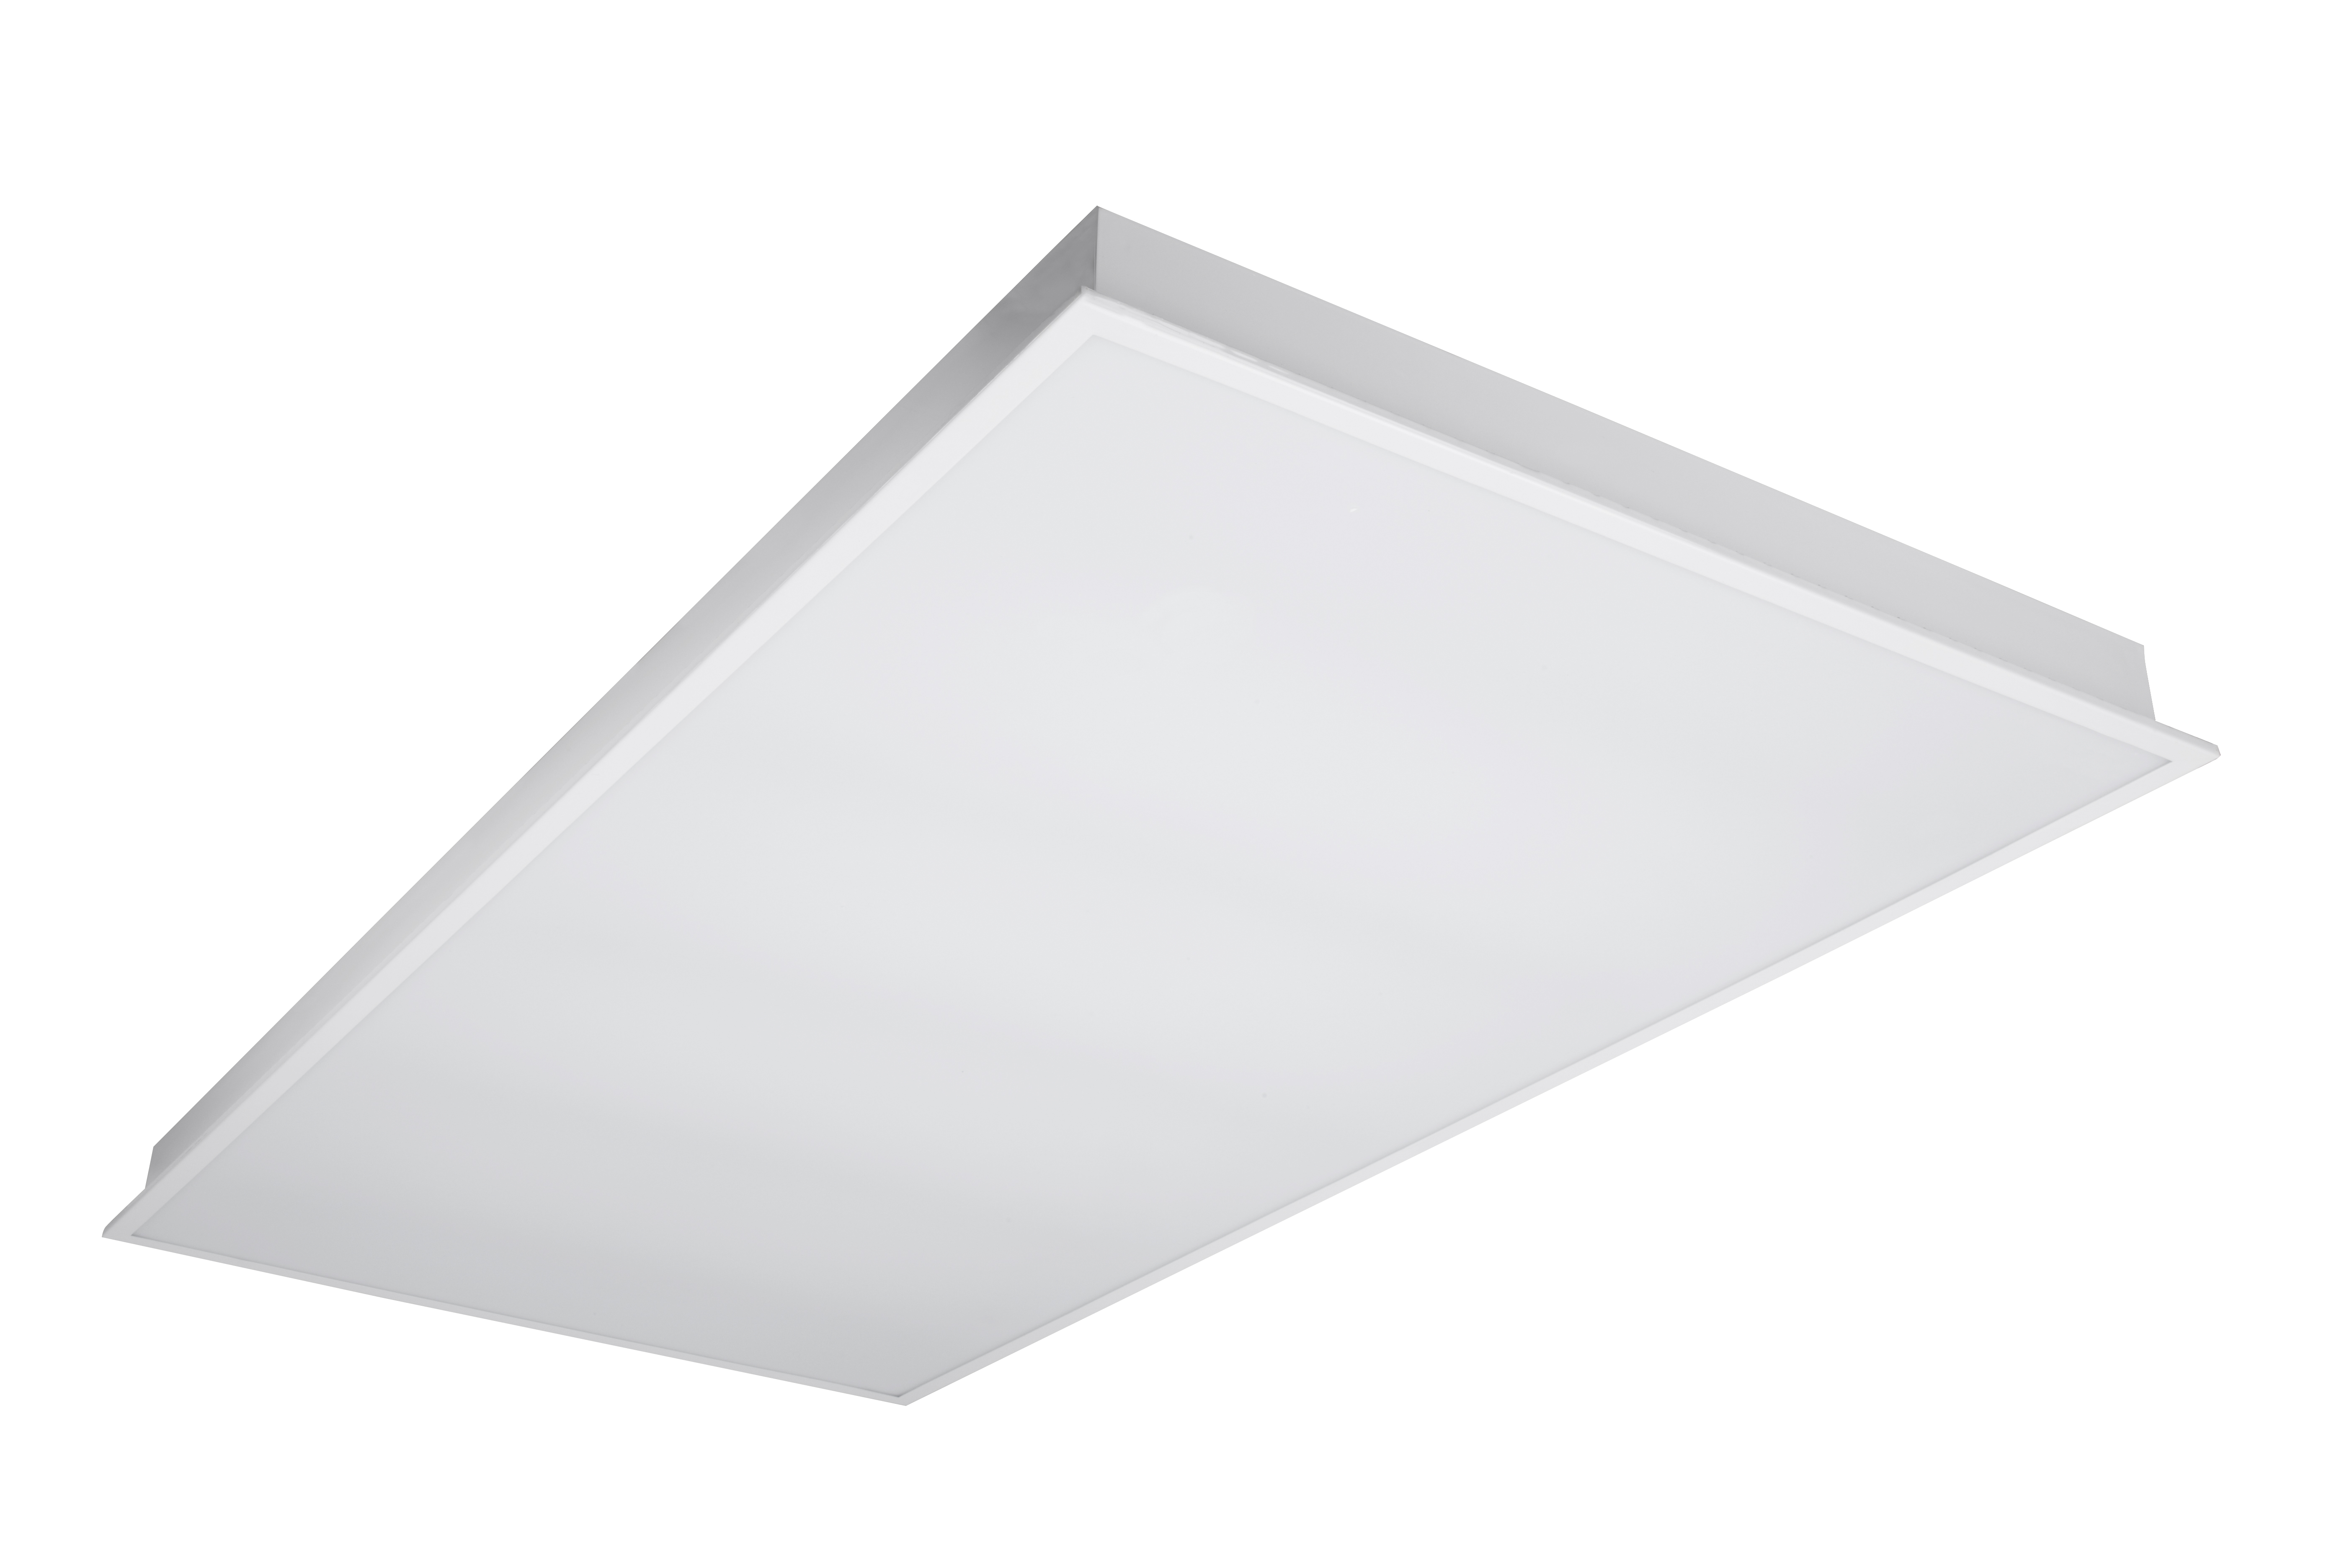 24FPL45/835/LED 81942 LED FLAT PANEL 2X4 45W 3500K 0-10V DIMMABLE